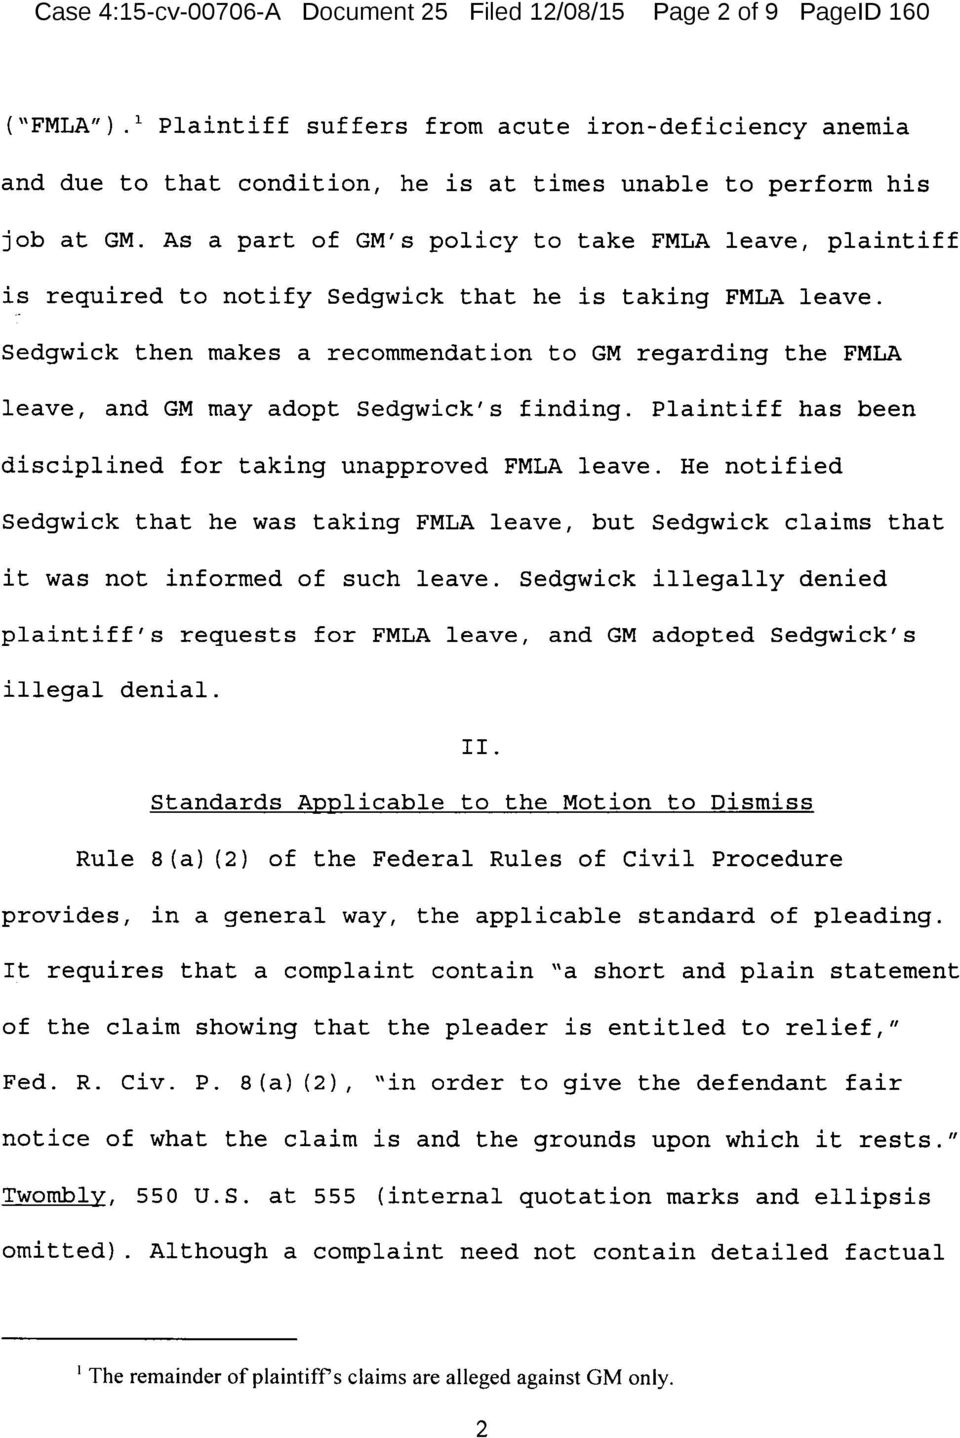 As a part of GM's policy to take FMLA leave, plaintiff is required to notify Sedgwick that he is taking FMLA leave.